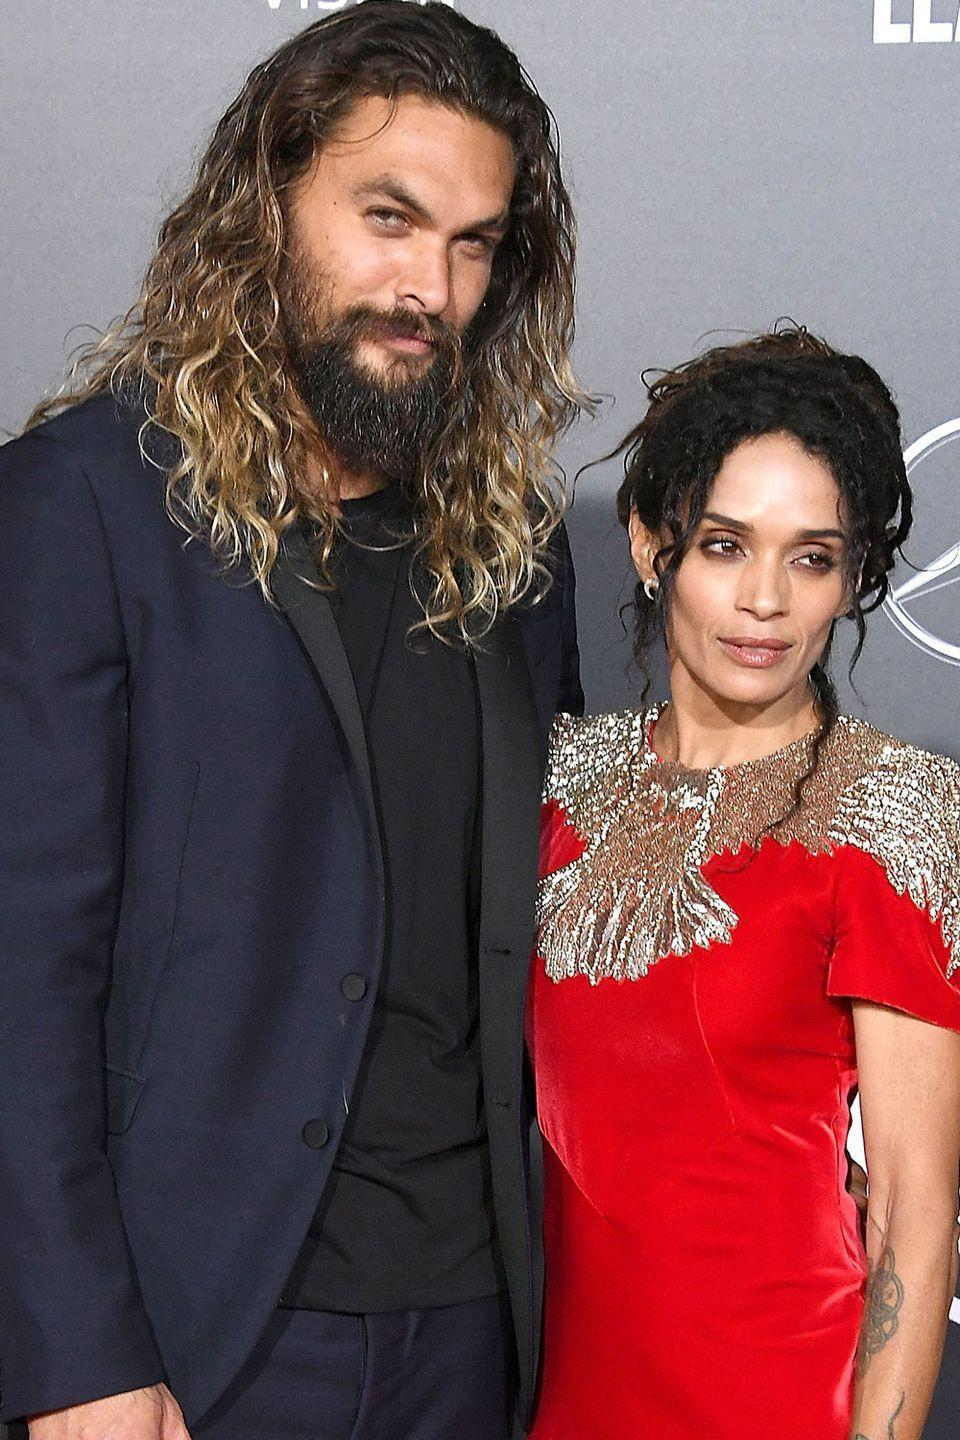 <p>Lisa nabbed herself a Dothraki ... and one who just happens to have a facial structure very similar to hers. It may be hard to see through that bushy beard, but it's all in those defined cheeks.</p>